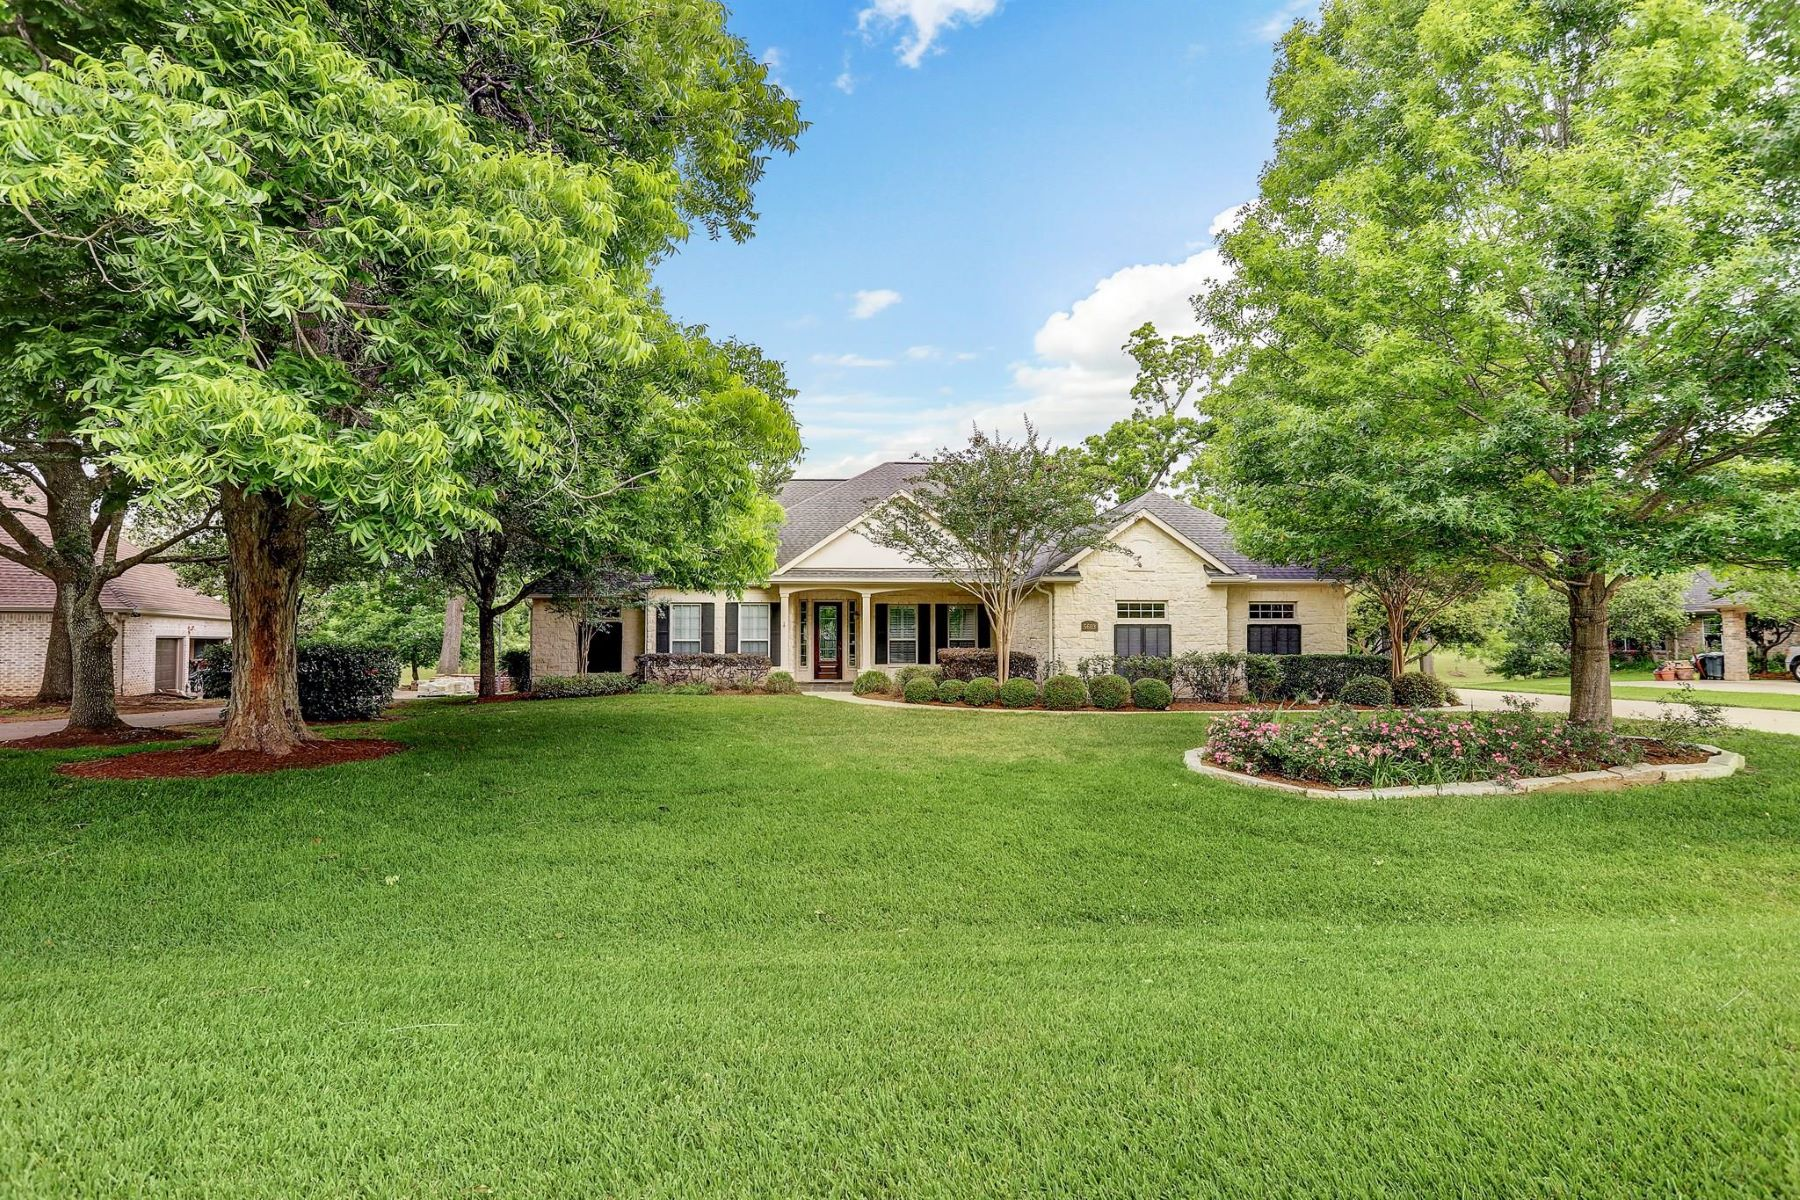 Single Family Homes for Sale at 5603 Westerdale Drive Fulshear, Texas 77441 United States